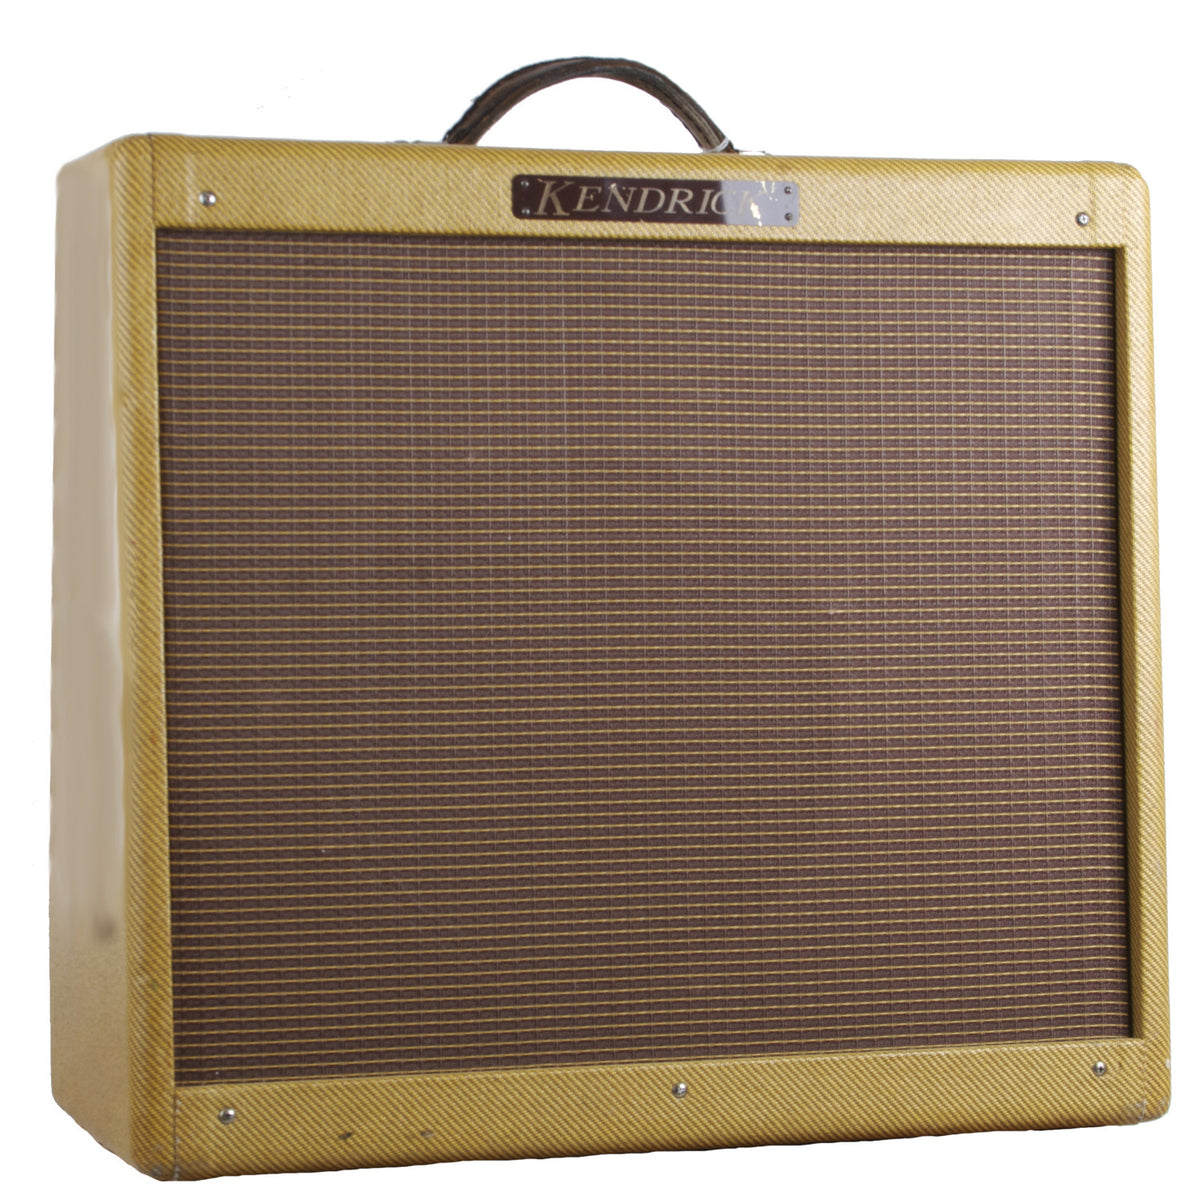 92/94 Kendrick Tweed Amp Model 2112TC - Garrett Park Guitars  - 1